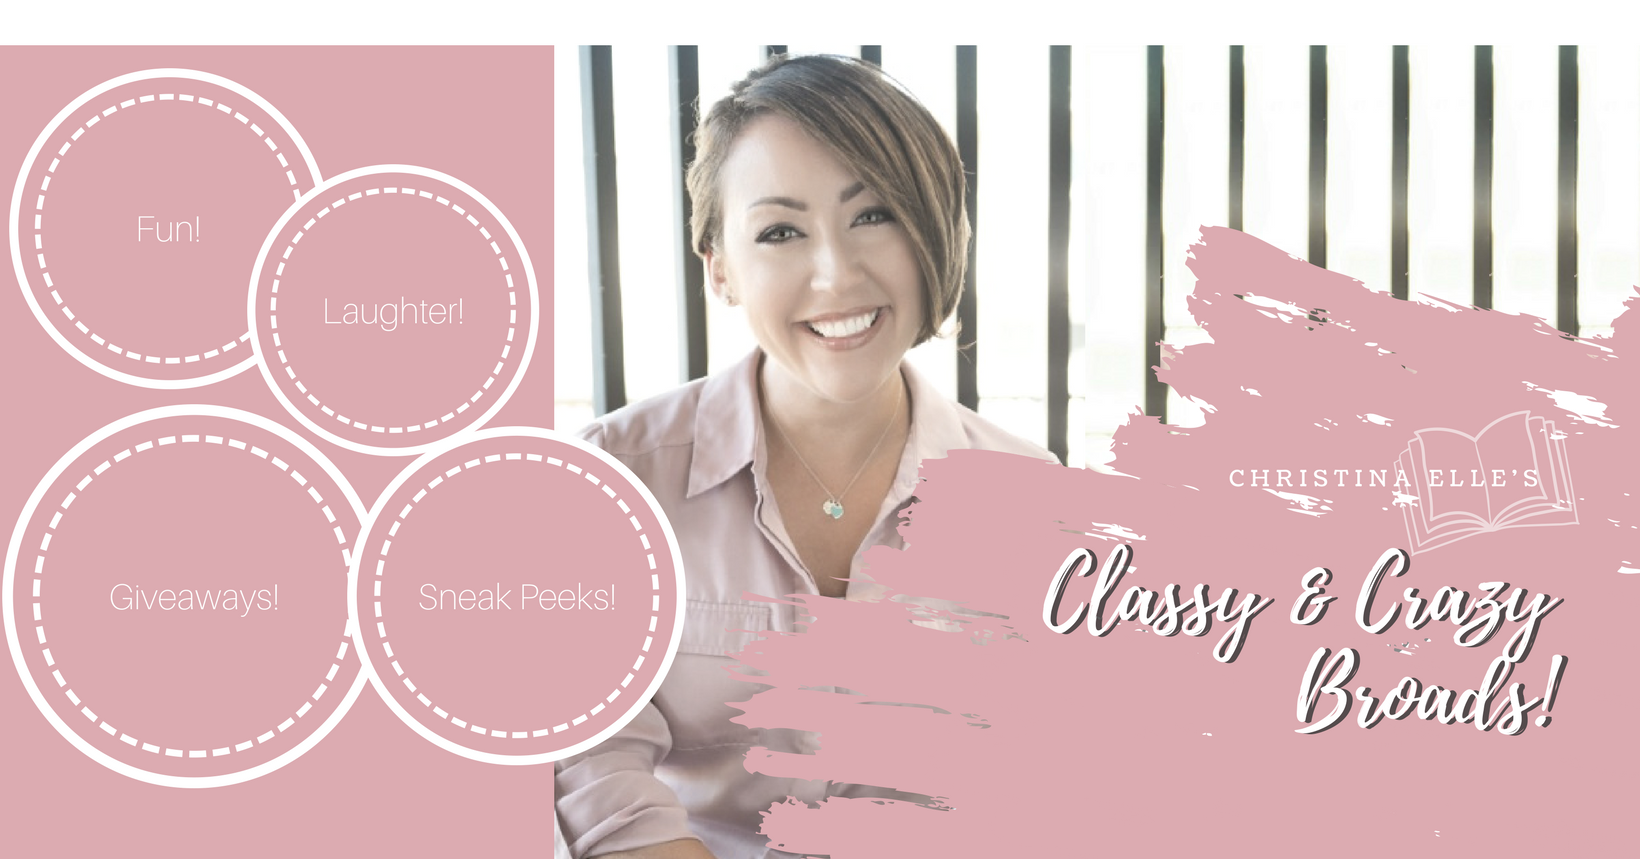 Join Christina's Classy & Crazy Broads! - It's a great place to chat about my books and characters, and for me to spoil my readers with exclusive excerpts and giveaways!